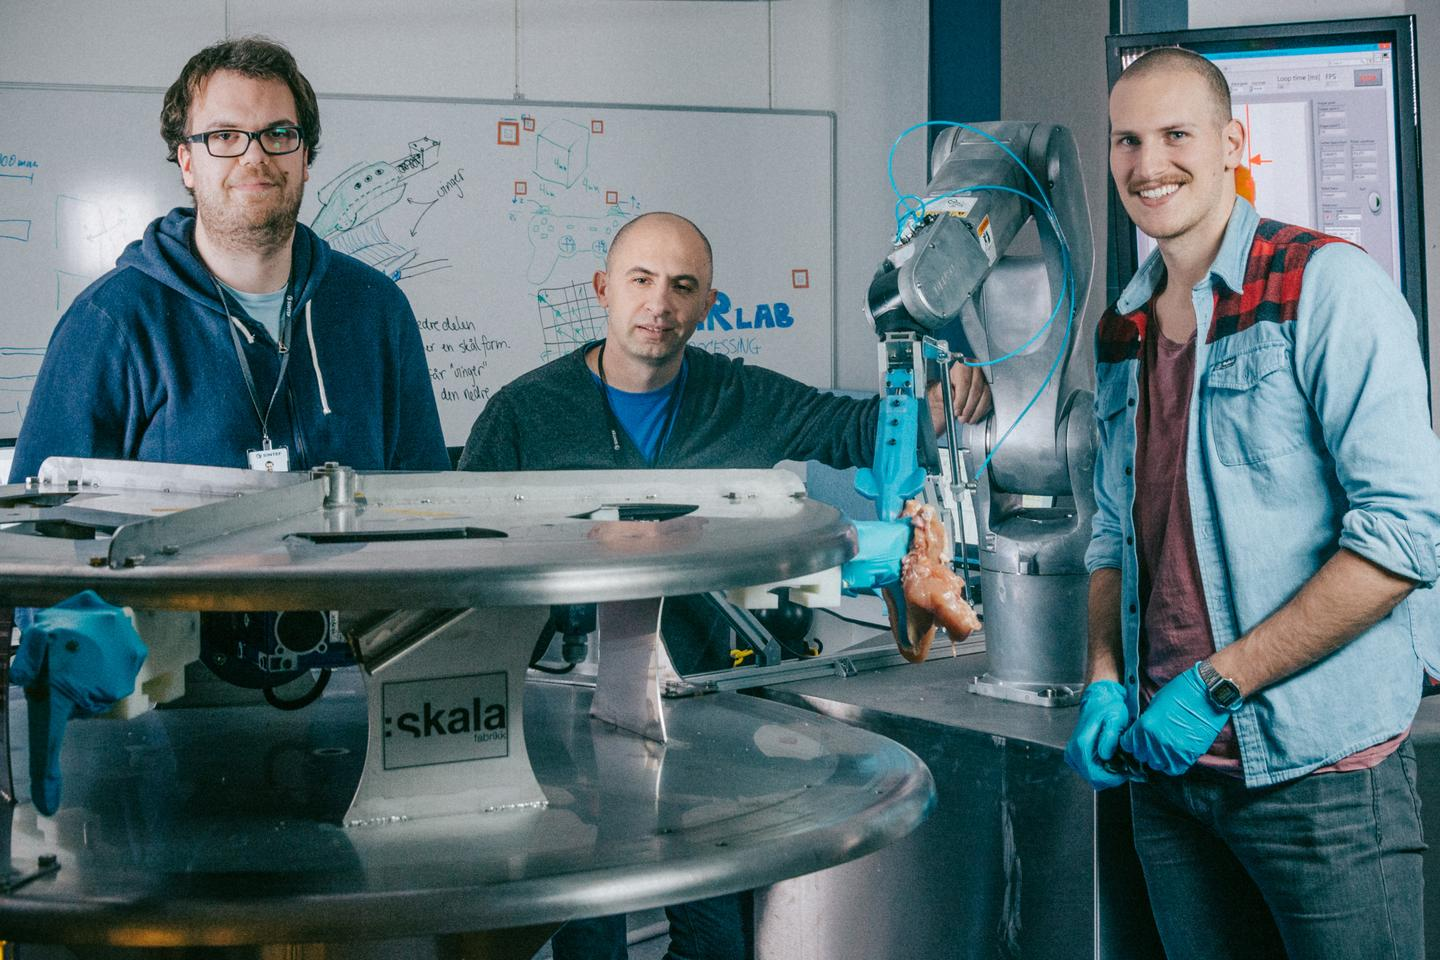 SINTEF researchers Elling Ruud Øye, Ekrem Misimi and Aleksander Eilertsen (left to right) with Gribbot